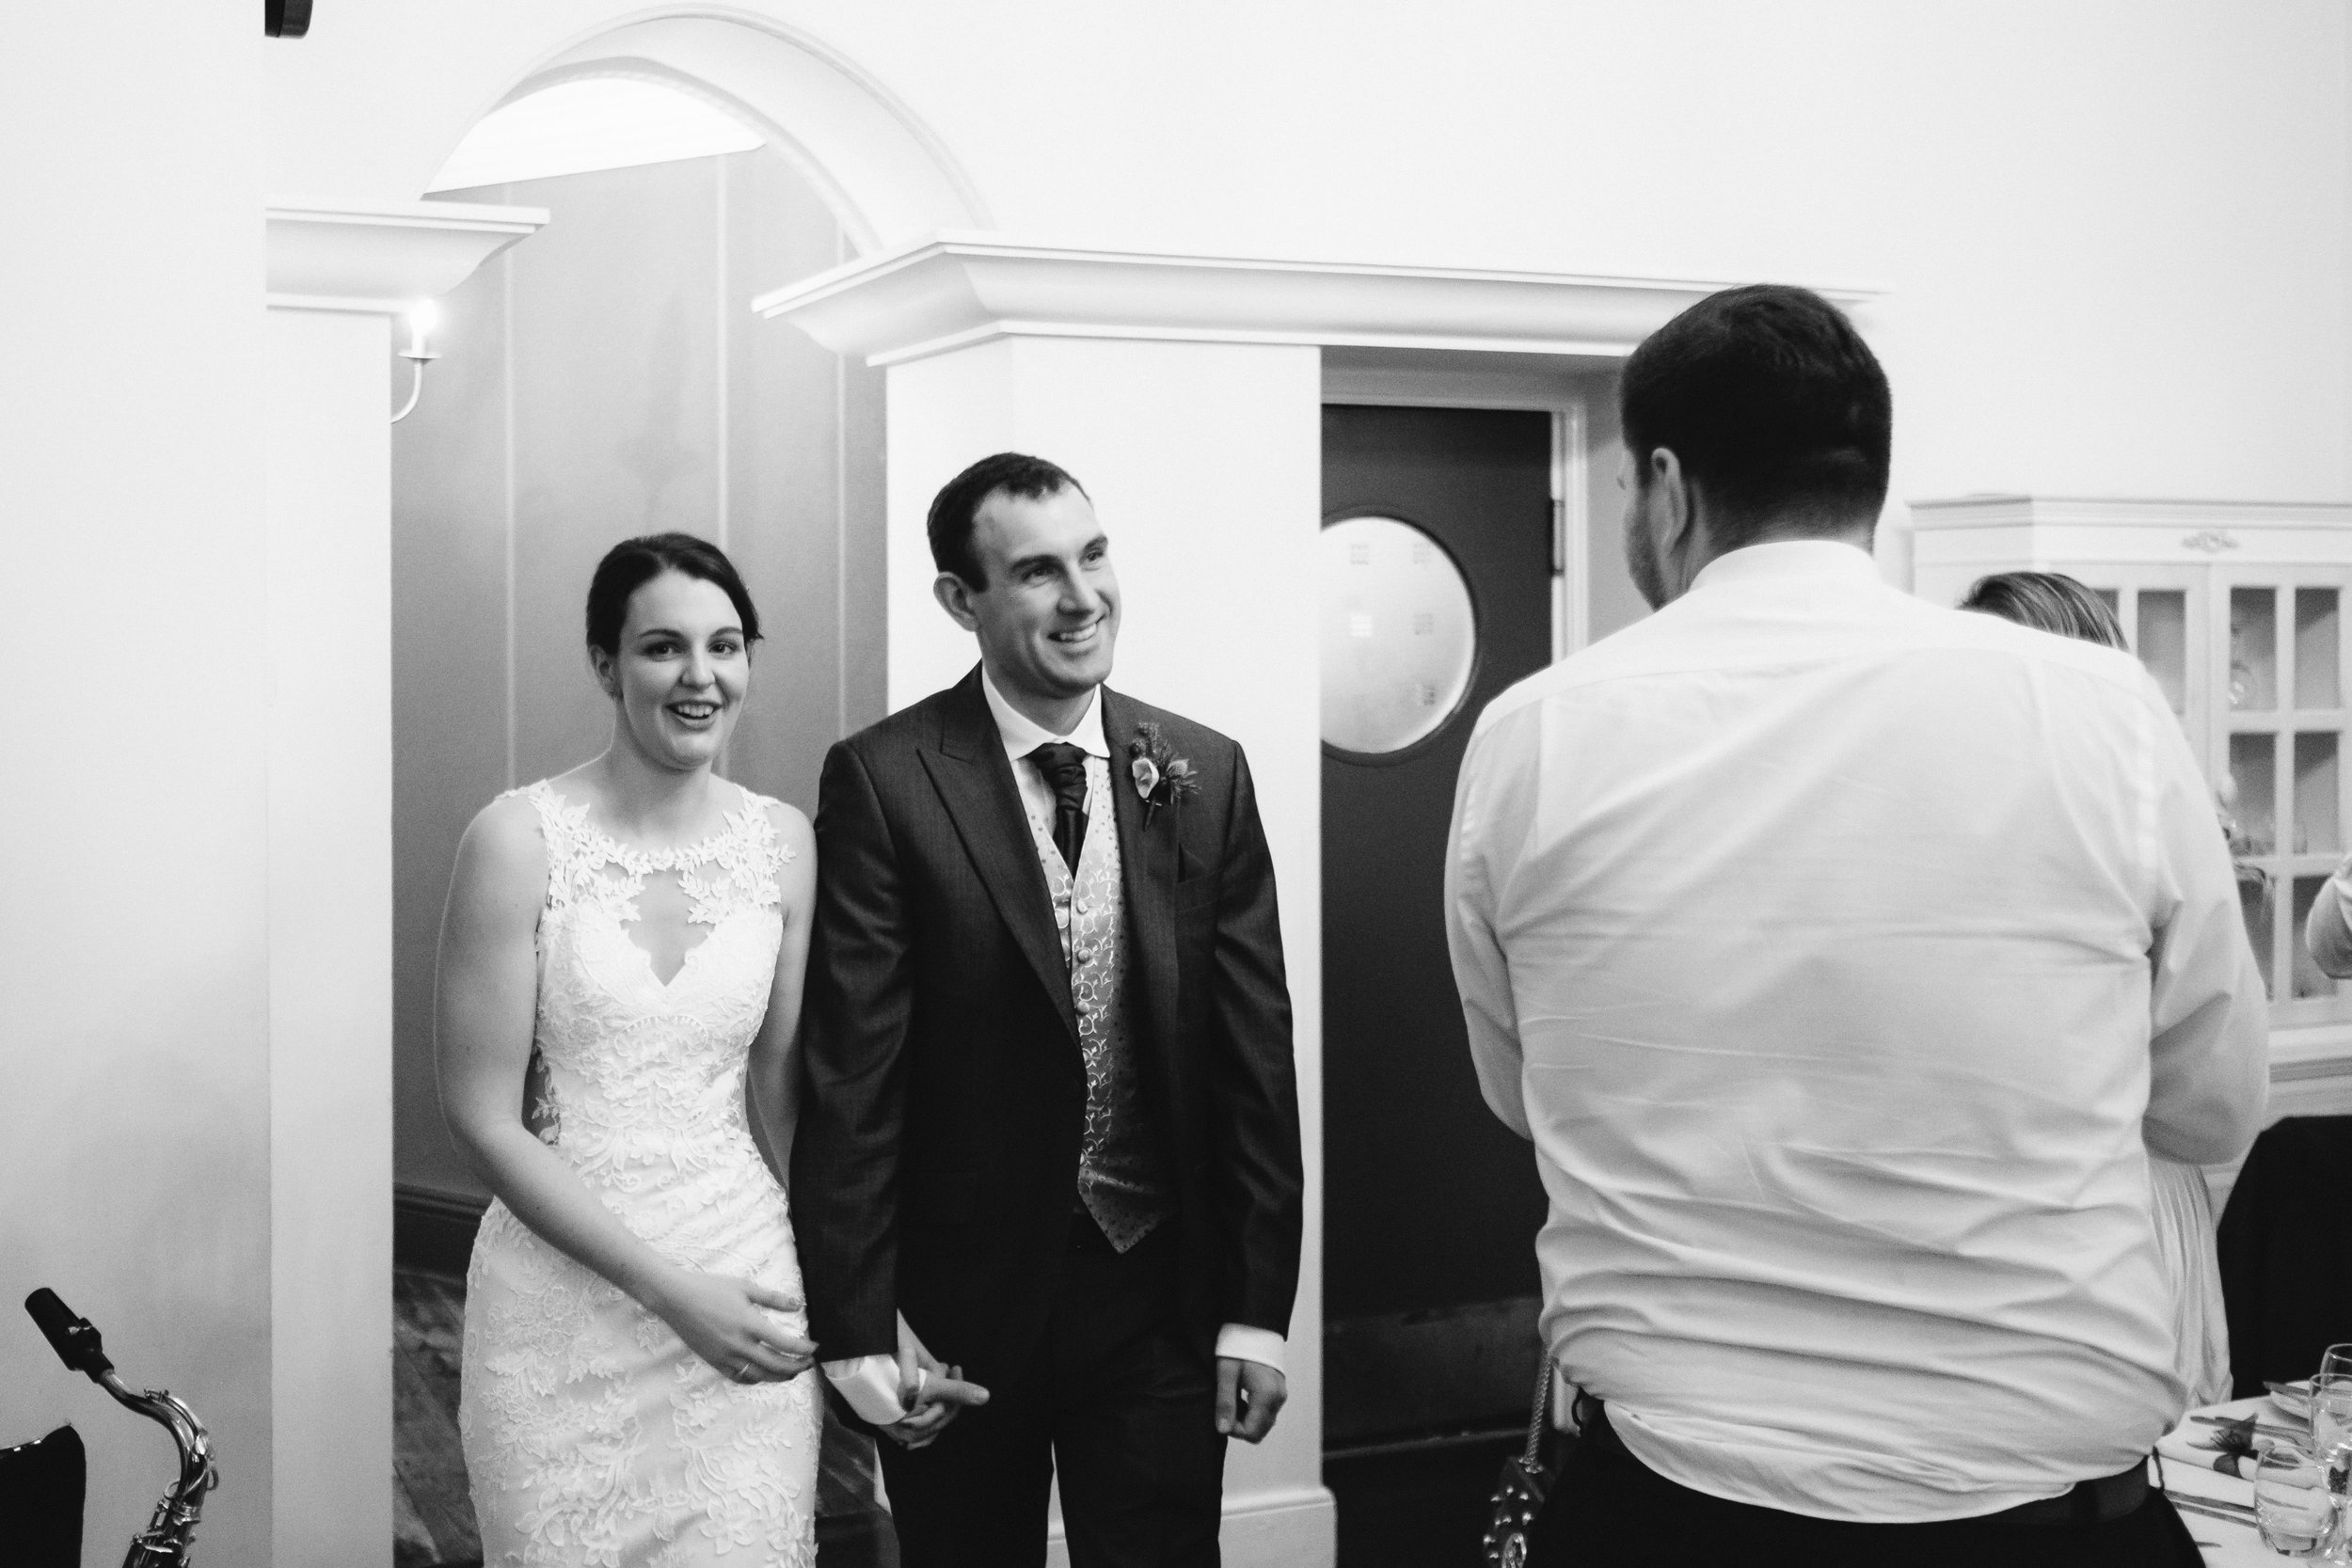 A black and white photo of the bride and groom entrance for the wedding breakfast